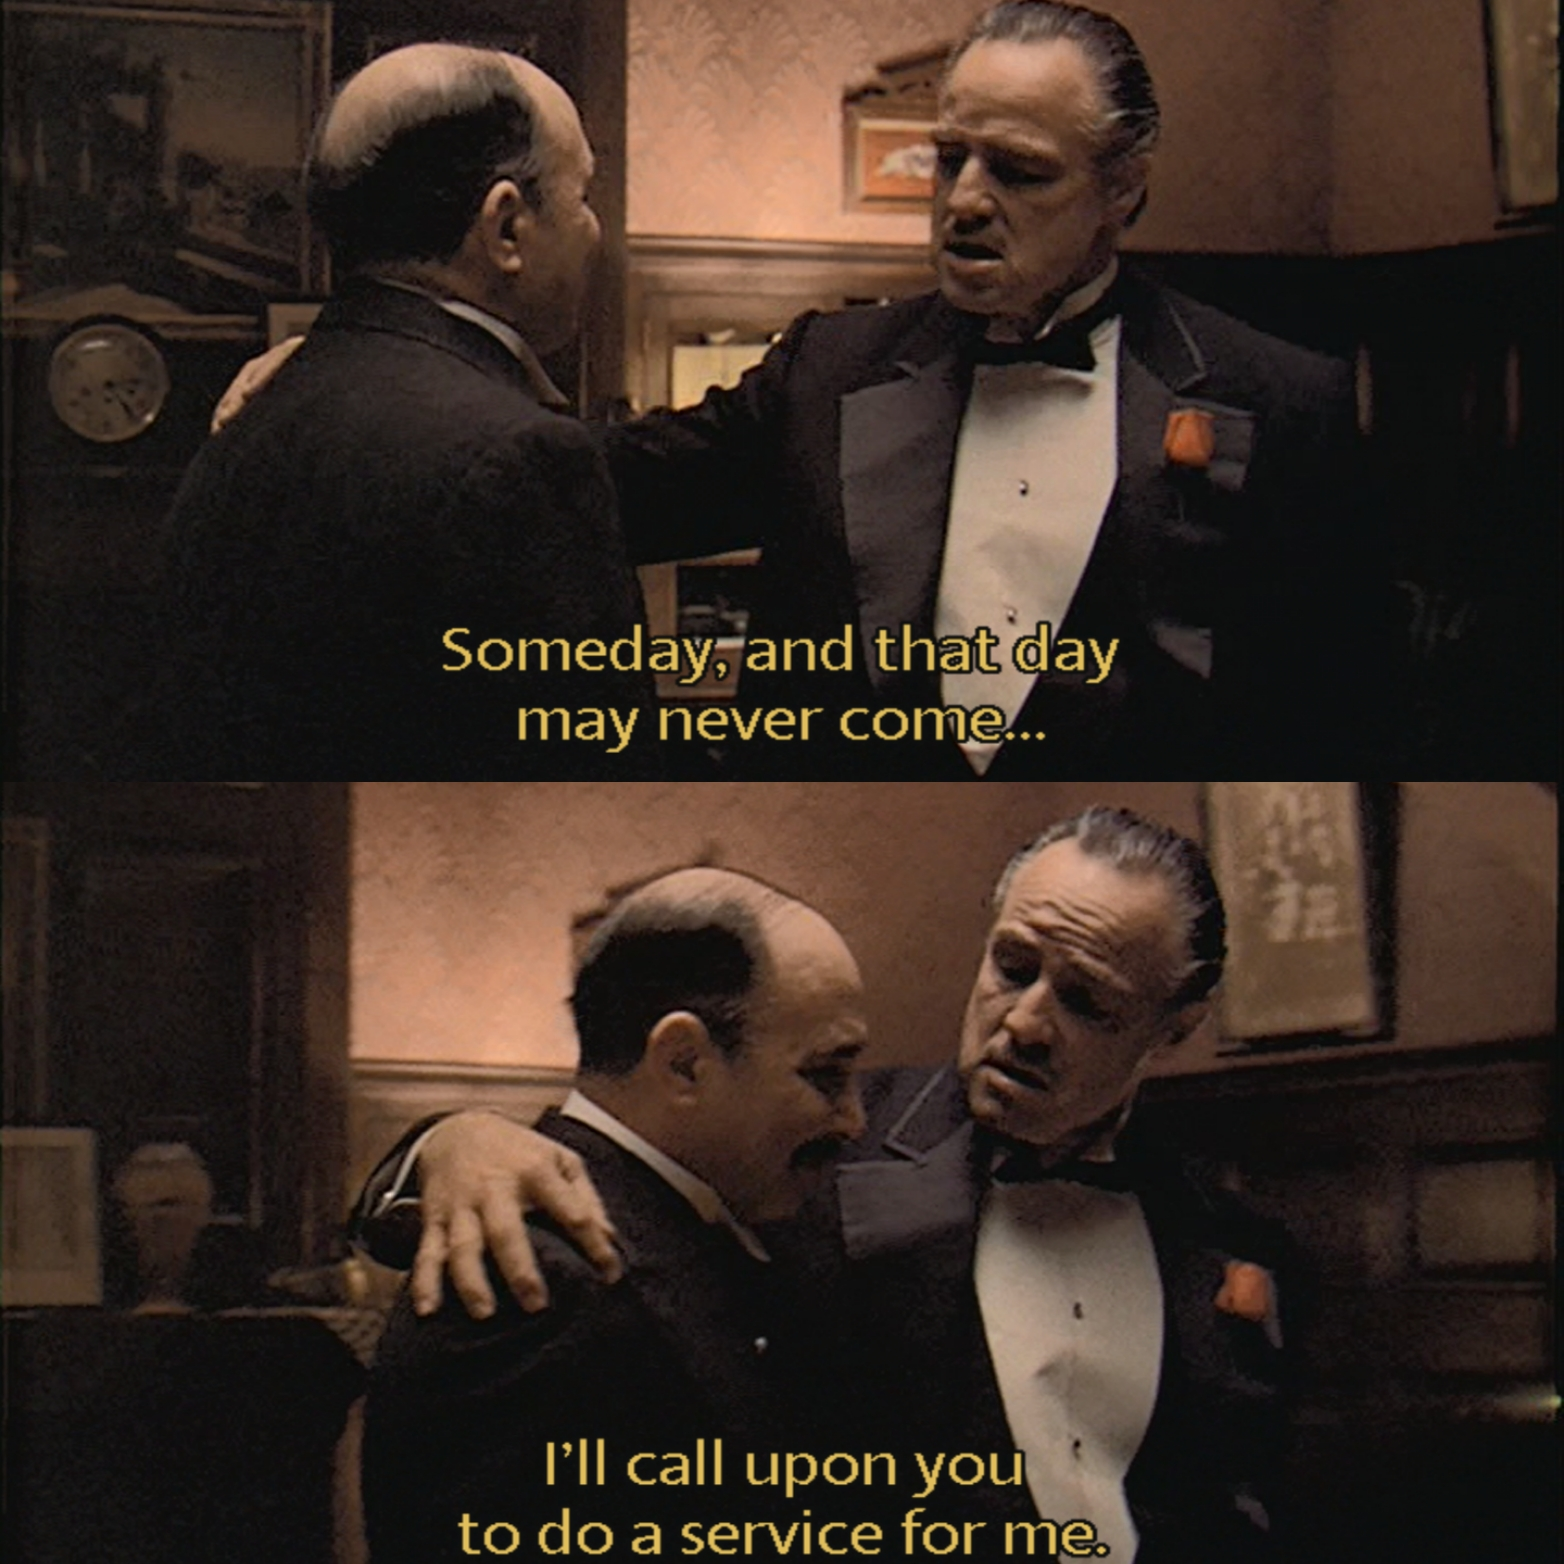 Minute 7: The Godfather-Favors - In Minute 7, Amanda and Stephen discuss the intricacies of the Don's barter system and how they apply the same idea in their own circle of friends. They also take some time to smell the roses and appreciate the performances in this minute, just like the Don.